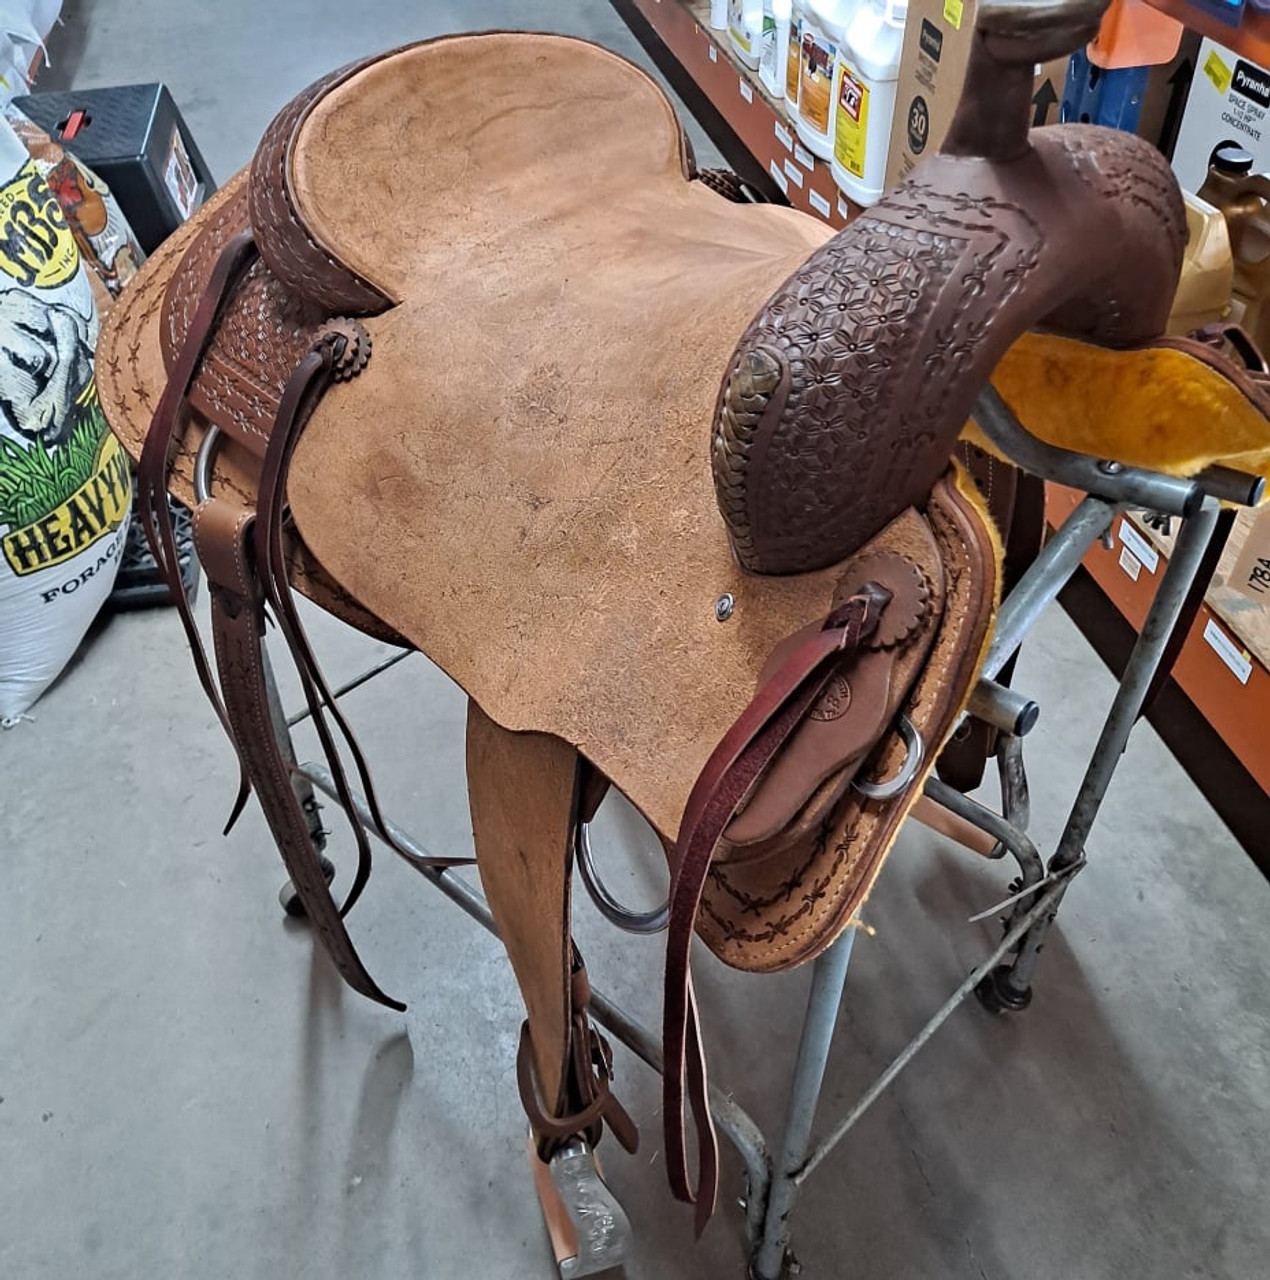 New Ranch Cutter by Fort Worth Saddle Co with 17 inch seat. Well built, hand-tooled ranch cutter. 6 strings, roughout contact points, dark oil finish. Includes latigo and offside, flank billets and flank cinch. Covered by the best warranty in the business. Gullet size is 7 inch, weight is 27lbs, and skirt is 28.75 inch. Made in USA. Limited lifetime warranty.  S1408